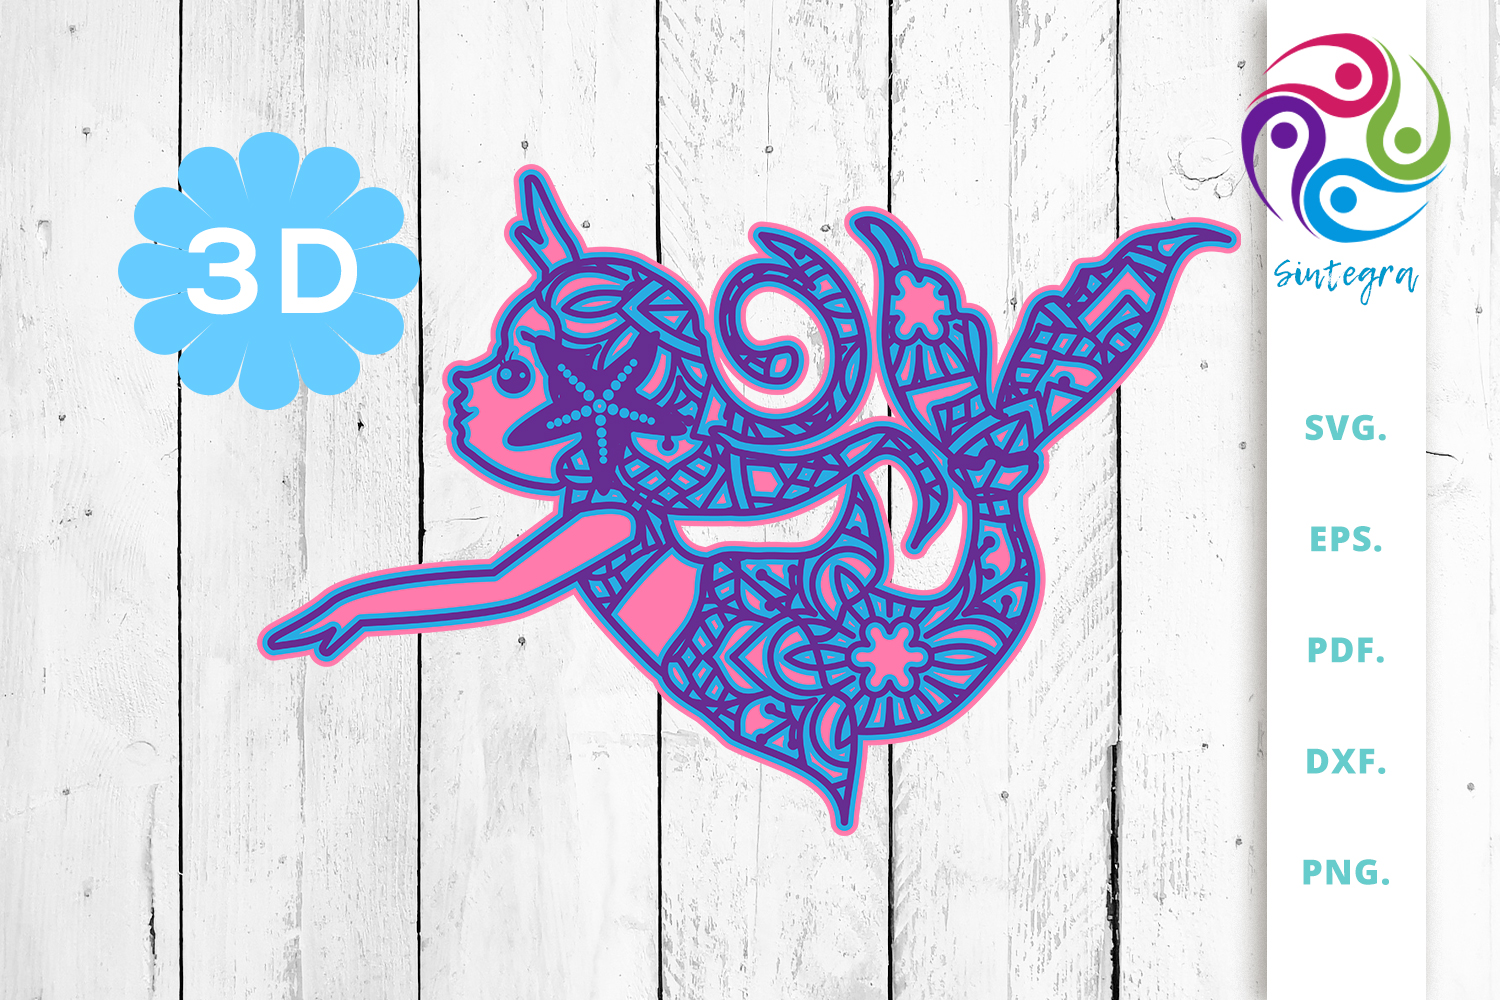 Download Free 3d Multilayer Mermaid Graphic By Sintegra Creative Fabrica for Cricut Explore, Silhouette and other cutting machines.